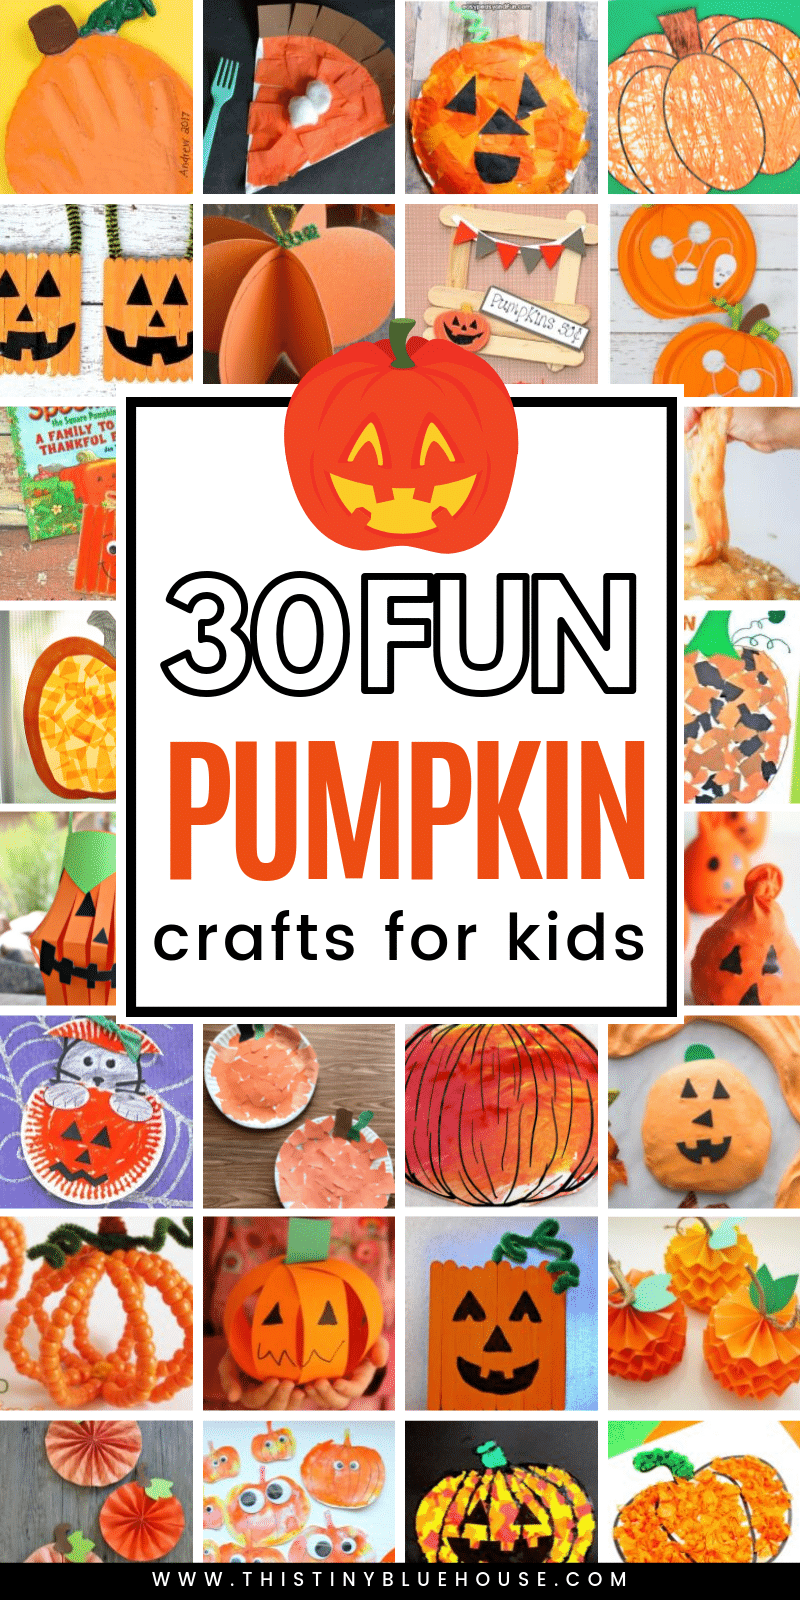 here are 30 of the BEST pumpkin Halloween crafts for kids. These fun crafts are a great way to get excited about Halloween! #halloweencraftsforkids #easyhalloweencraftsforkids #pumpkincraftsforkids #jackolanterncrafts